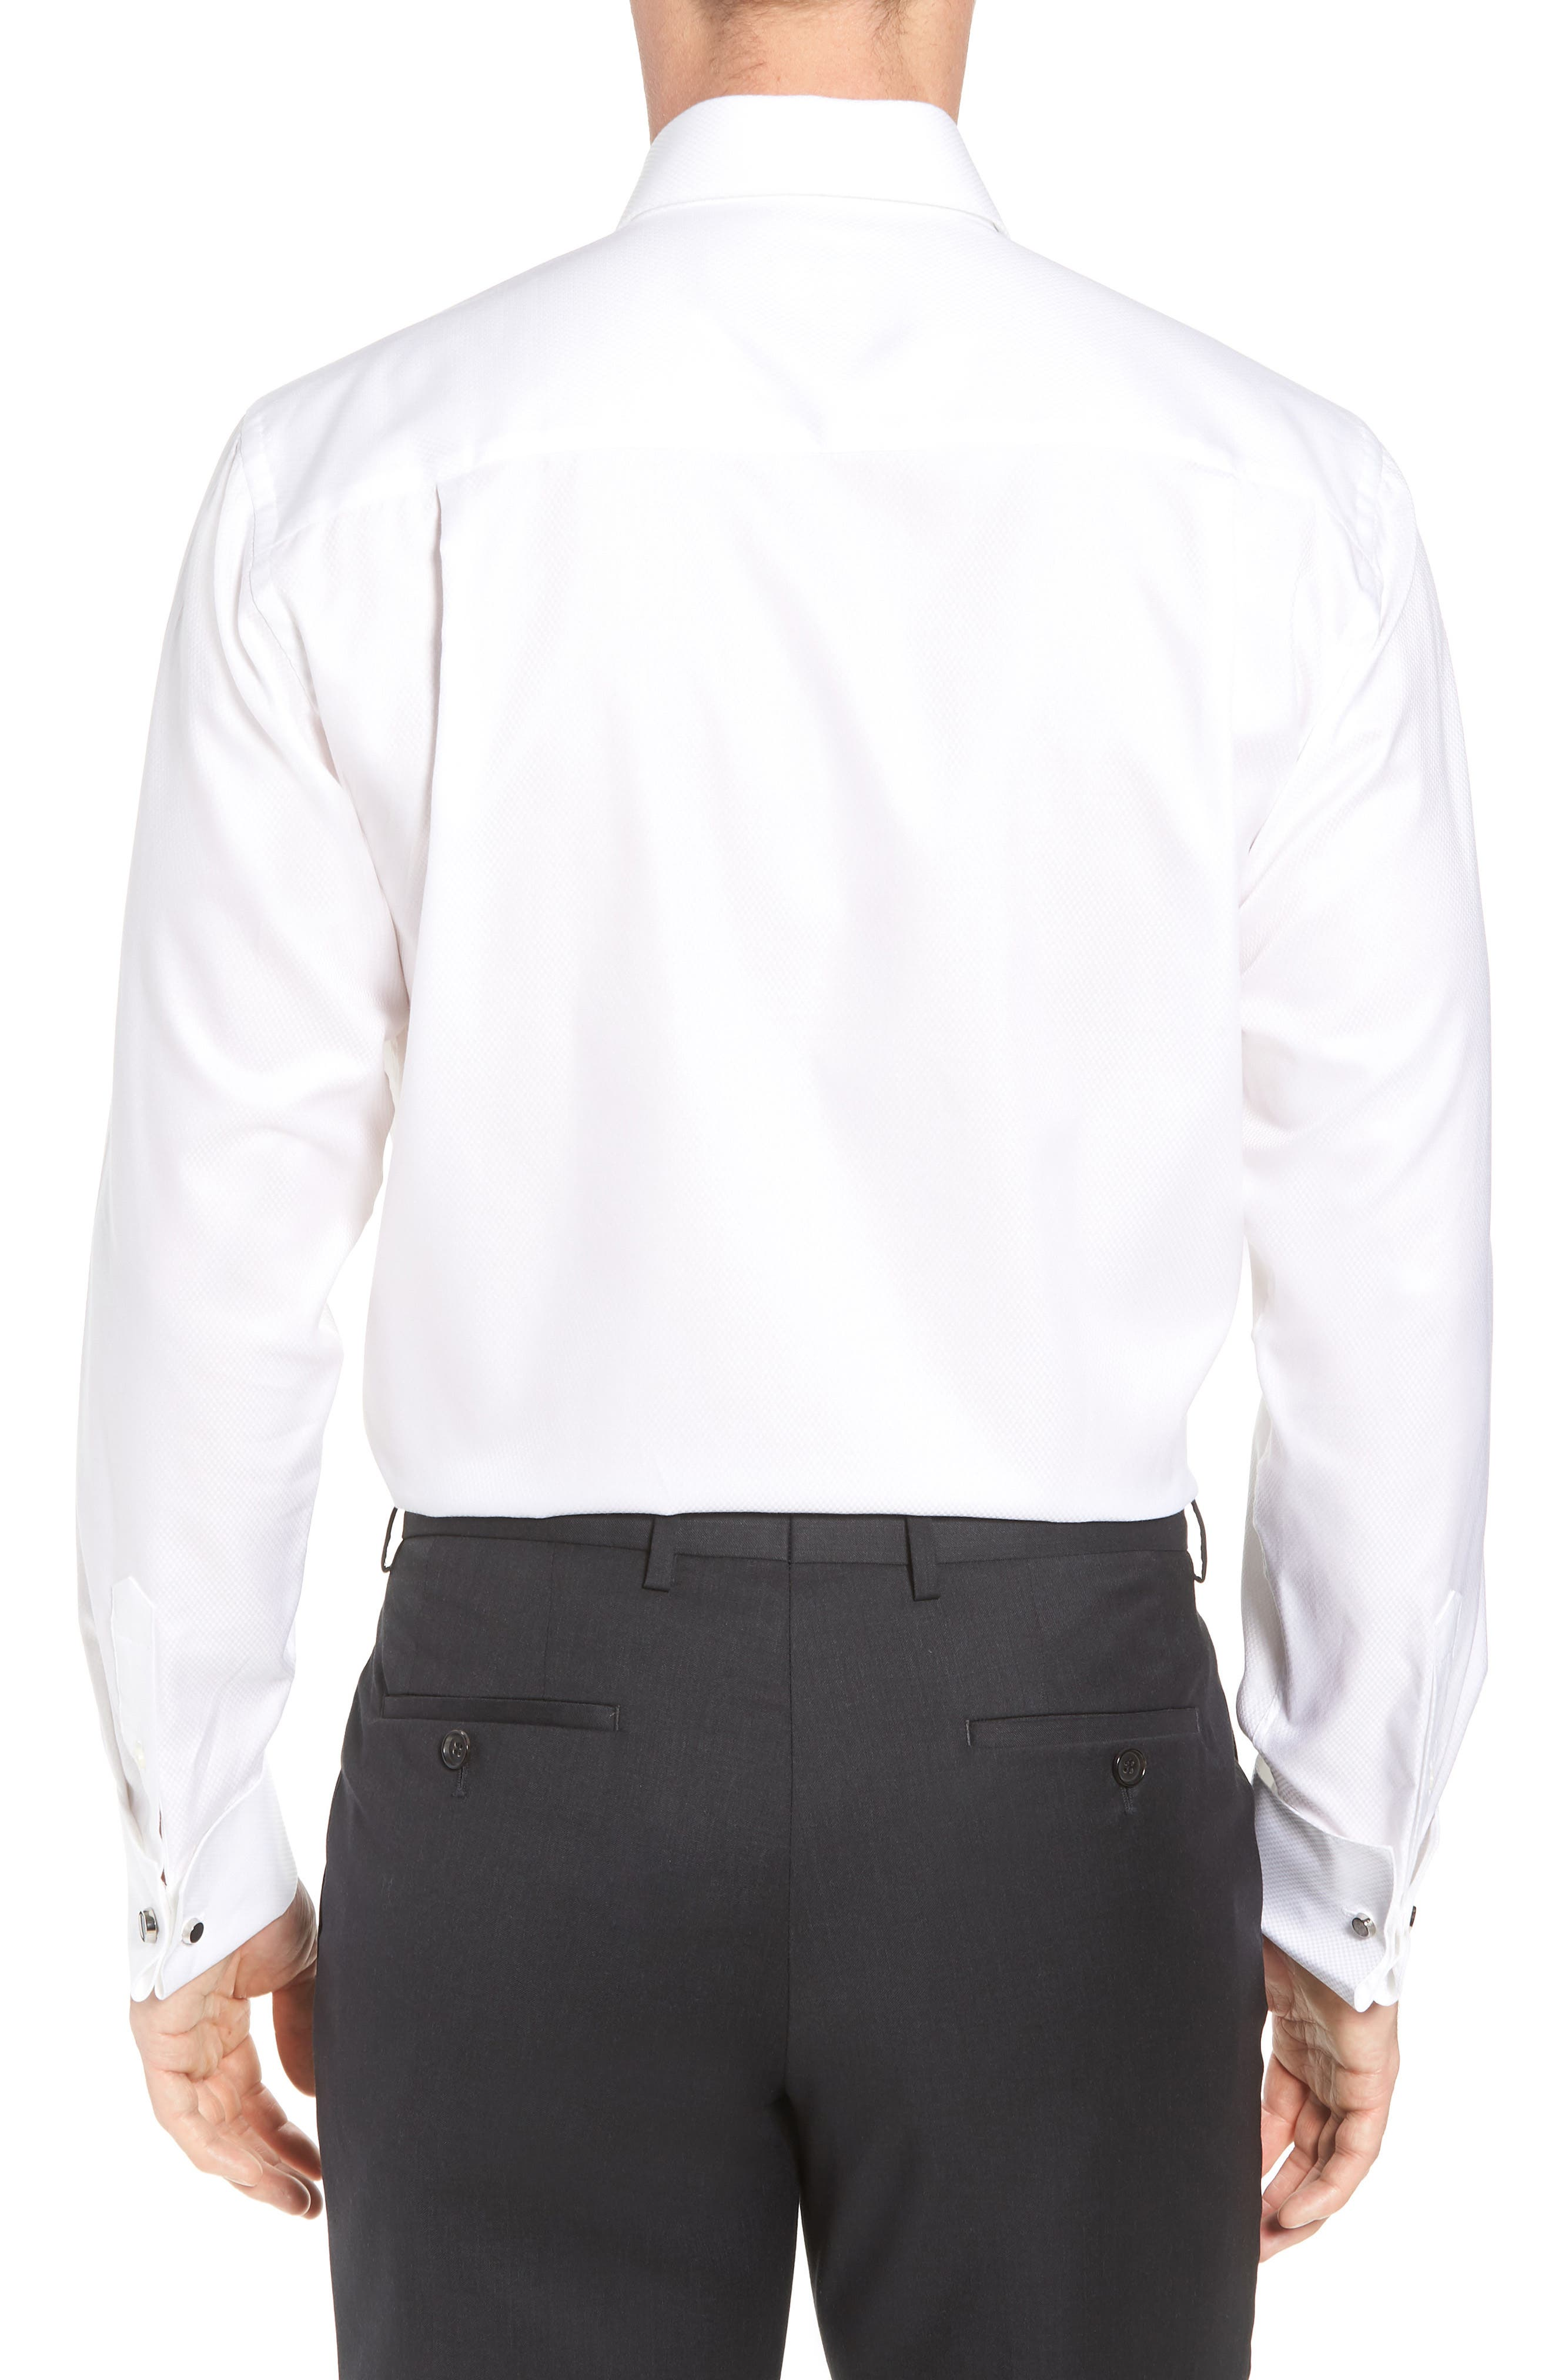 DAVID DONAHUE, Regular Fit Solid French Cuff Tuxedo Shirt, Alternate thumbnail 3, color, WHITE / WHITE